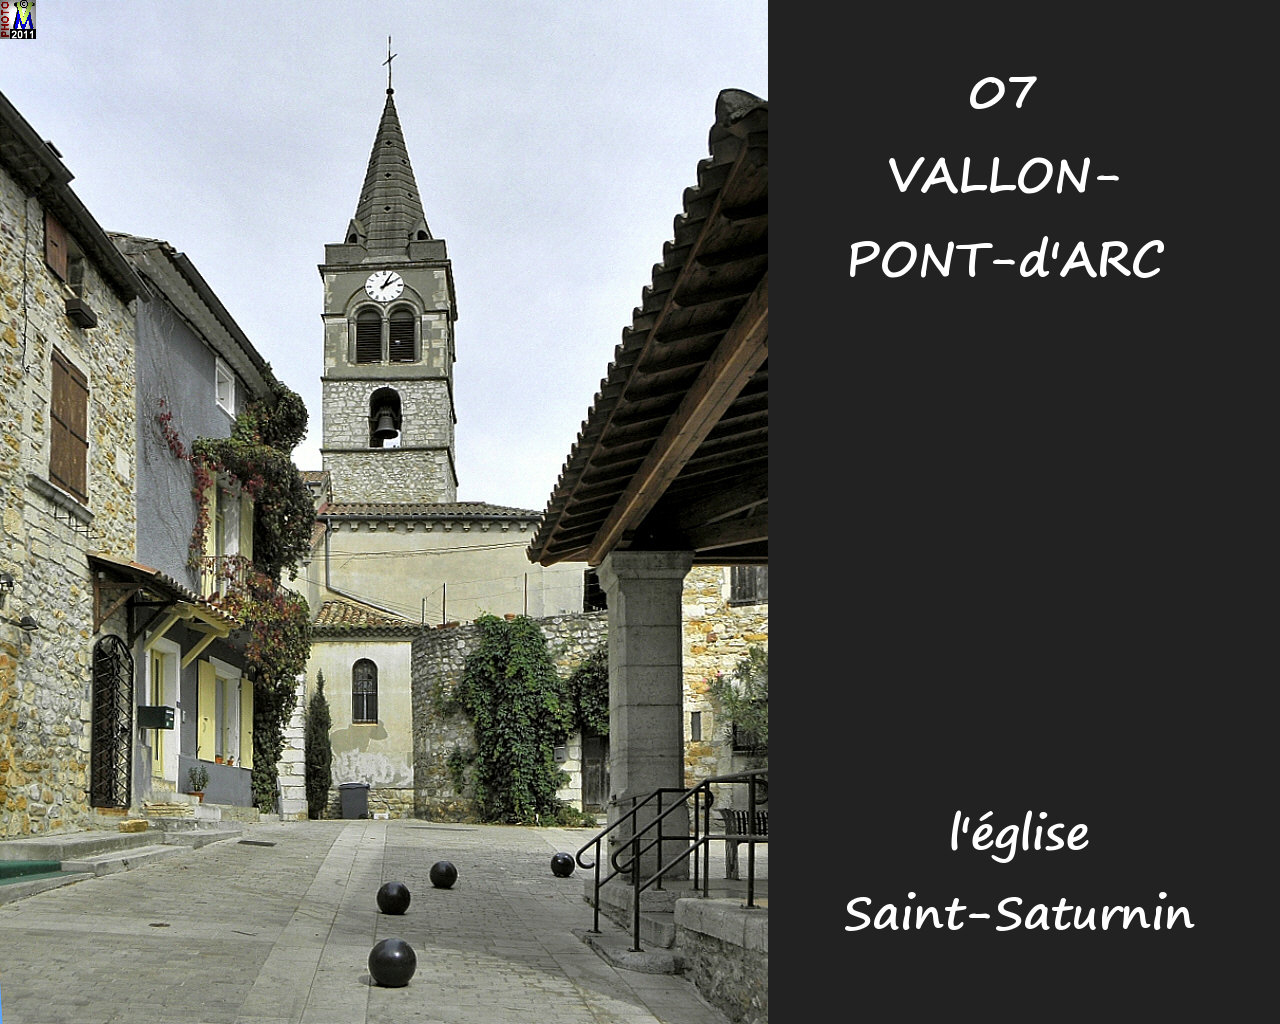 07VALLON-PONT-ARC_eglise_100.jpg